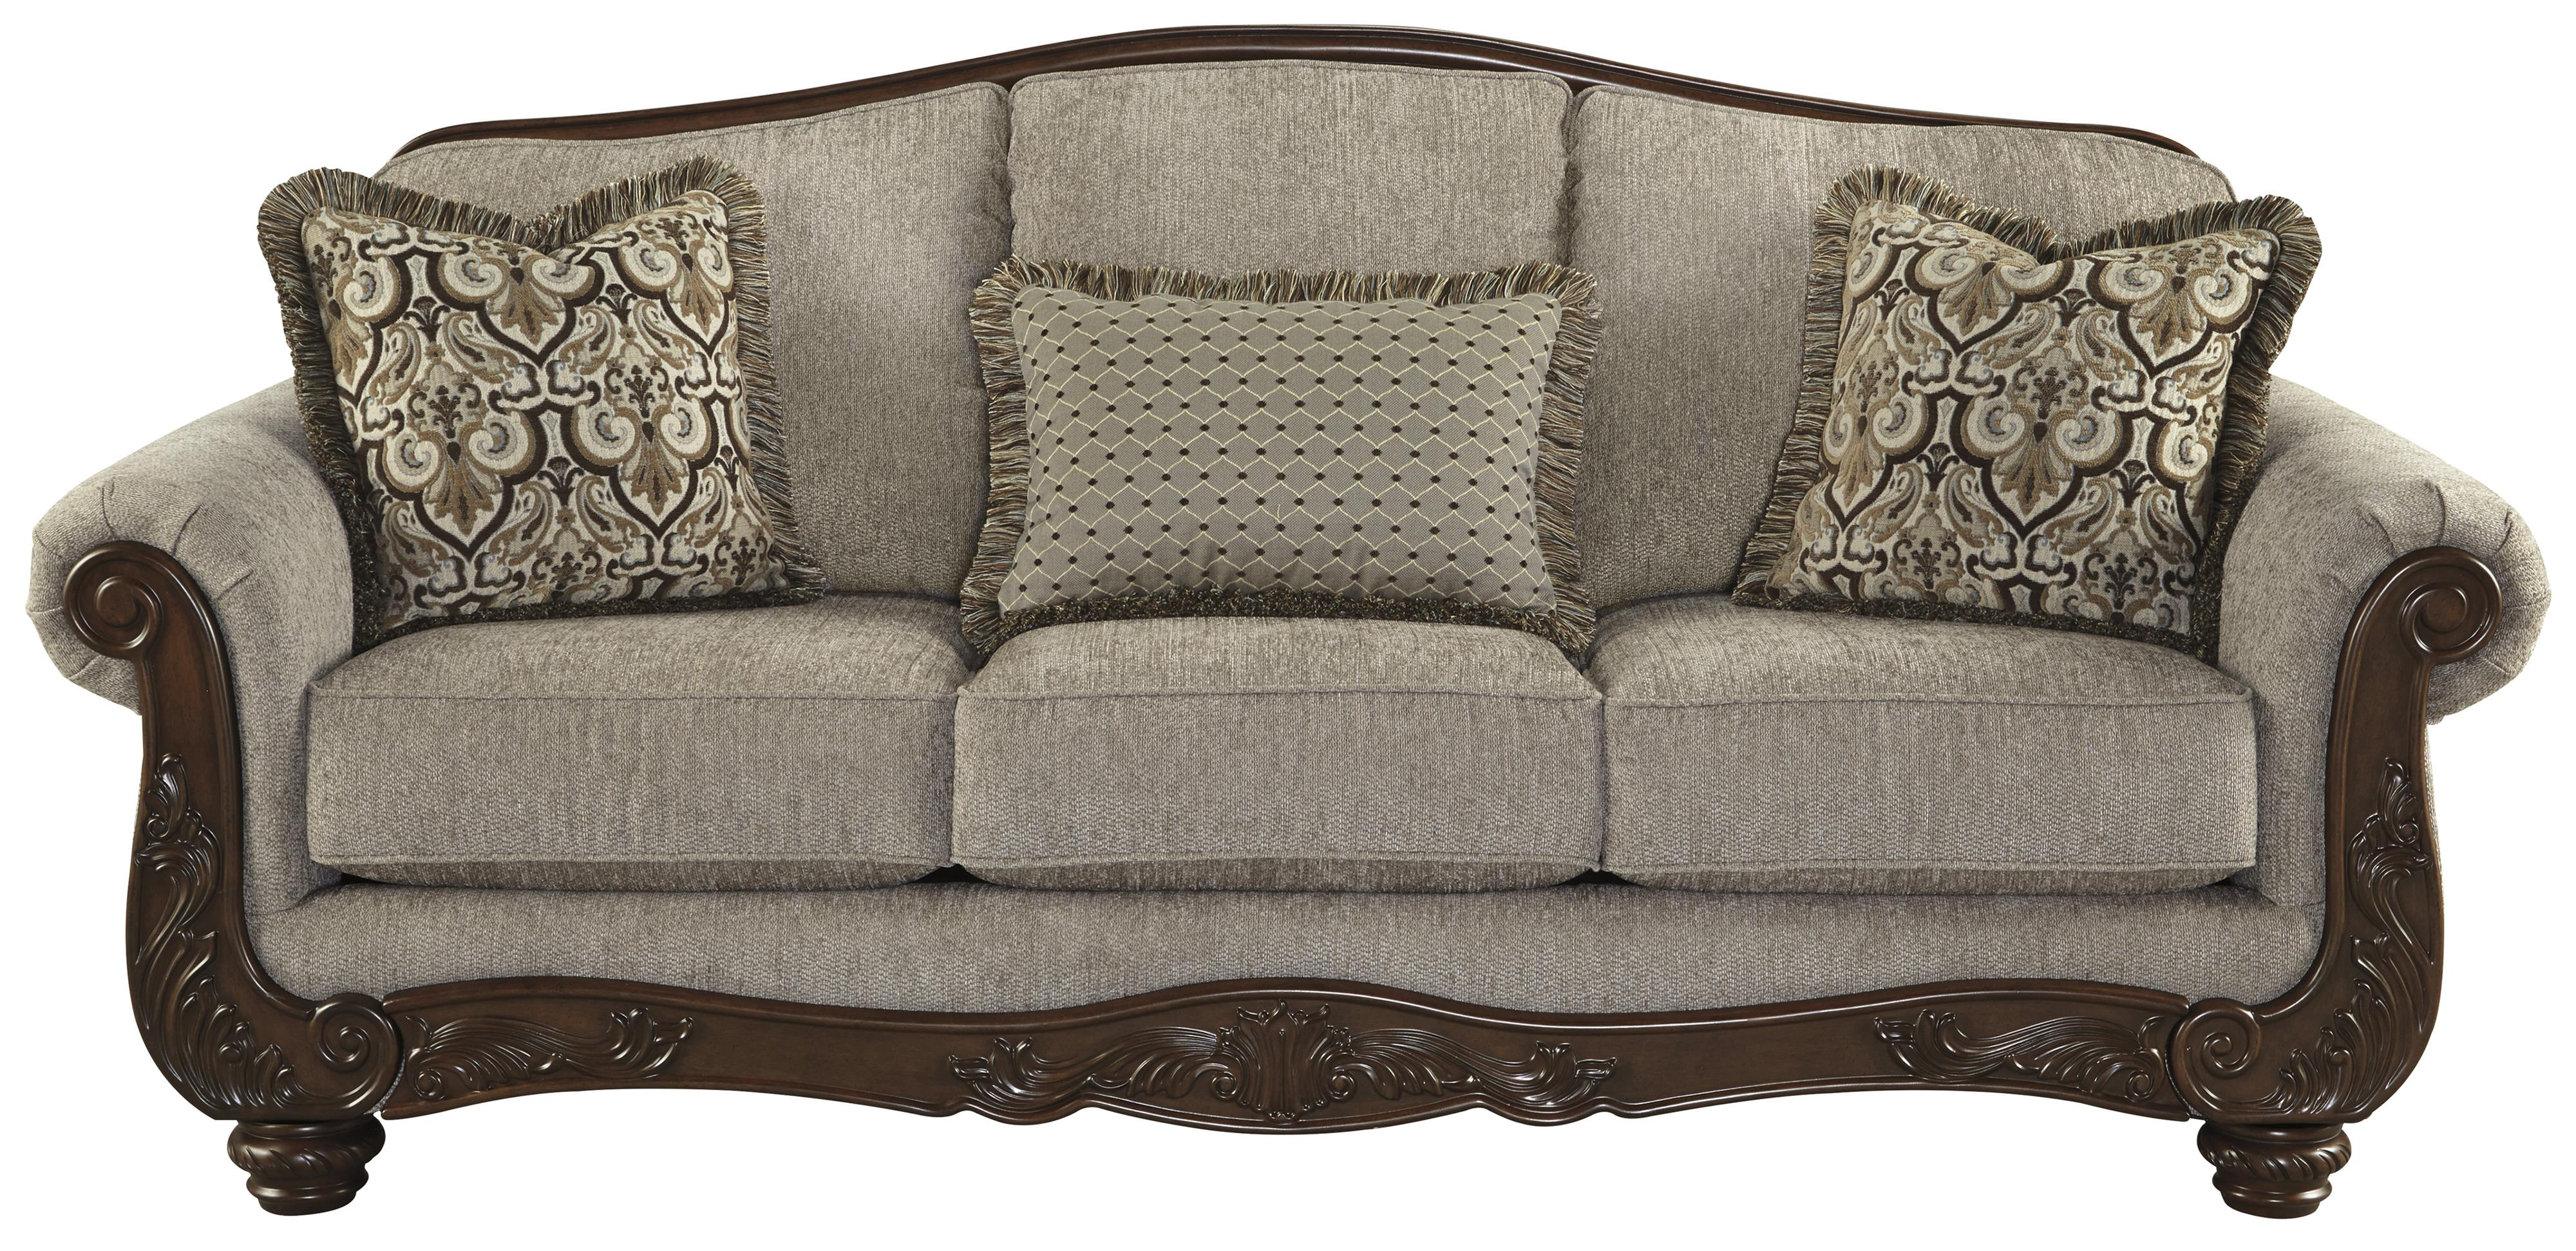 Signature Design by Ashley Cecilyn Sofa - Item Number: 5760338